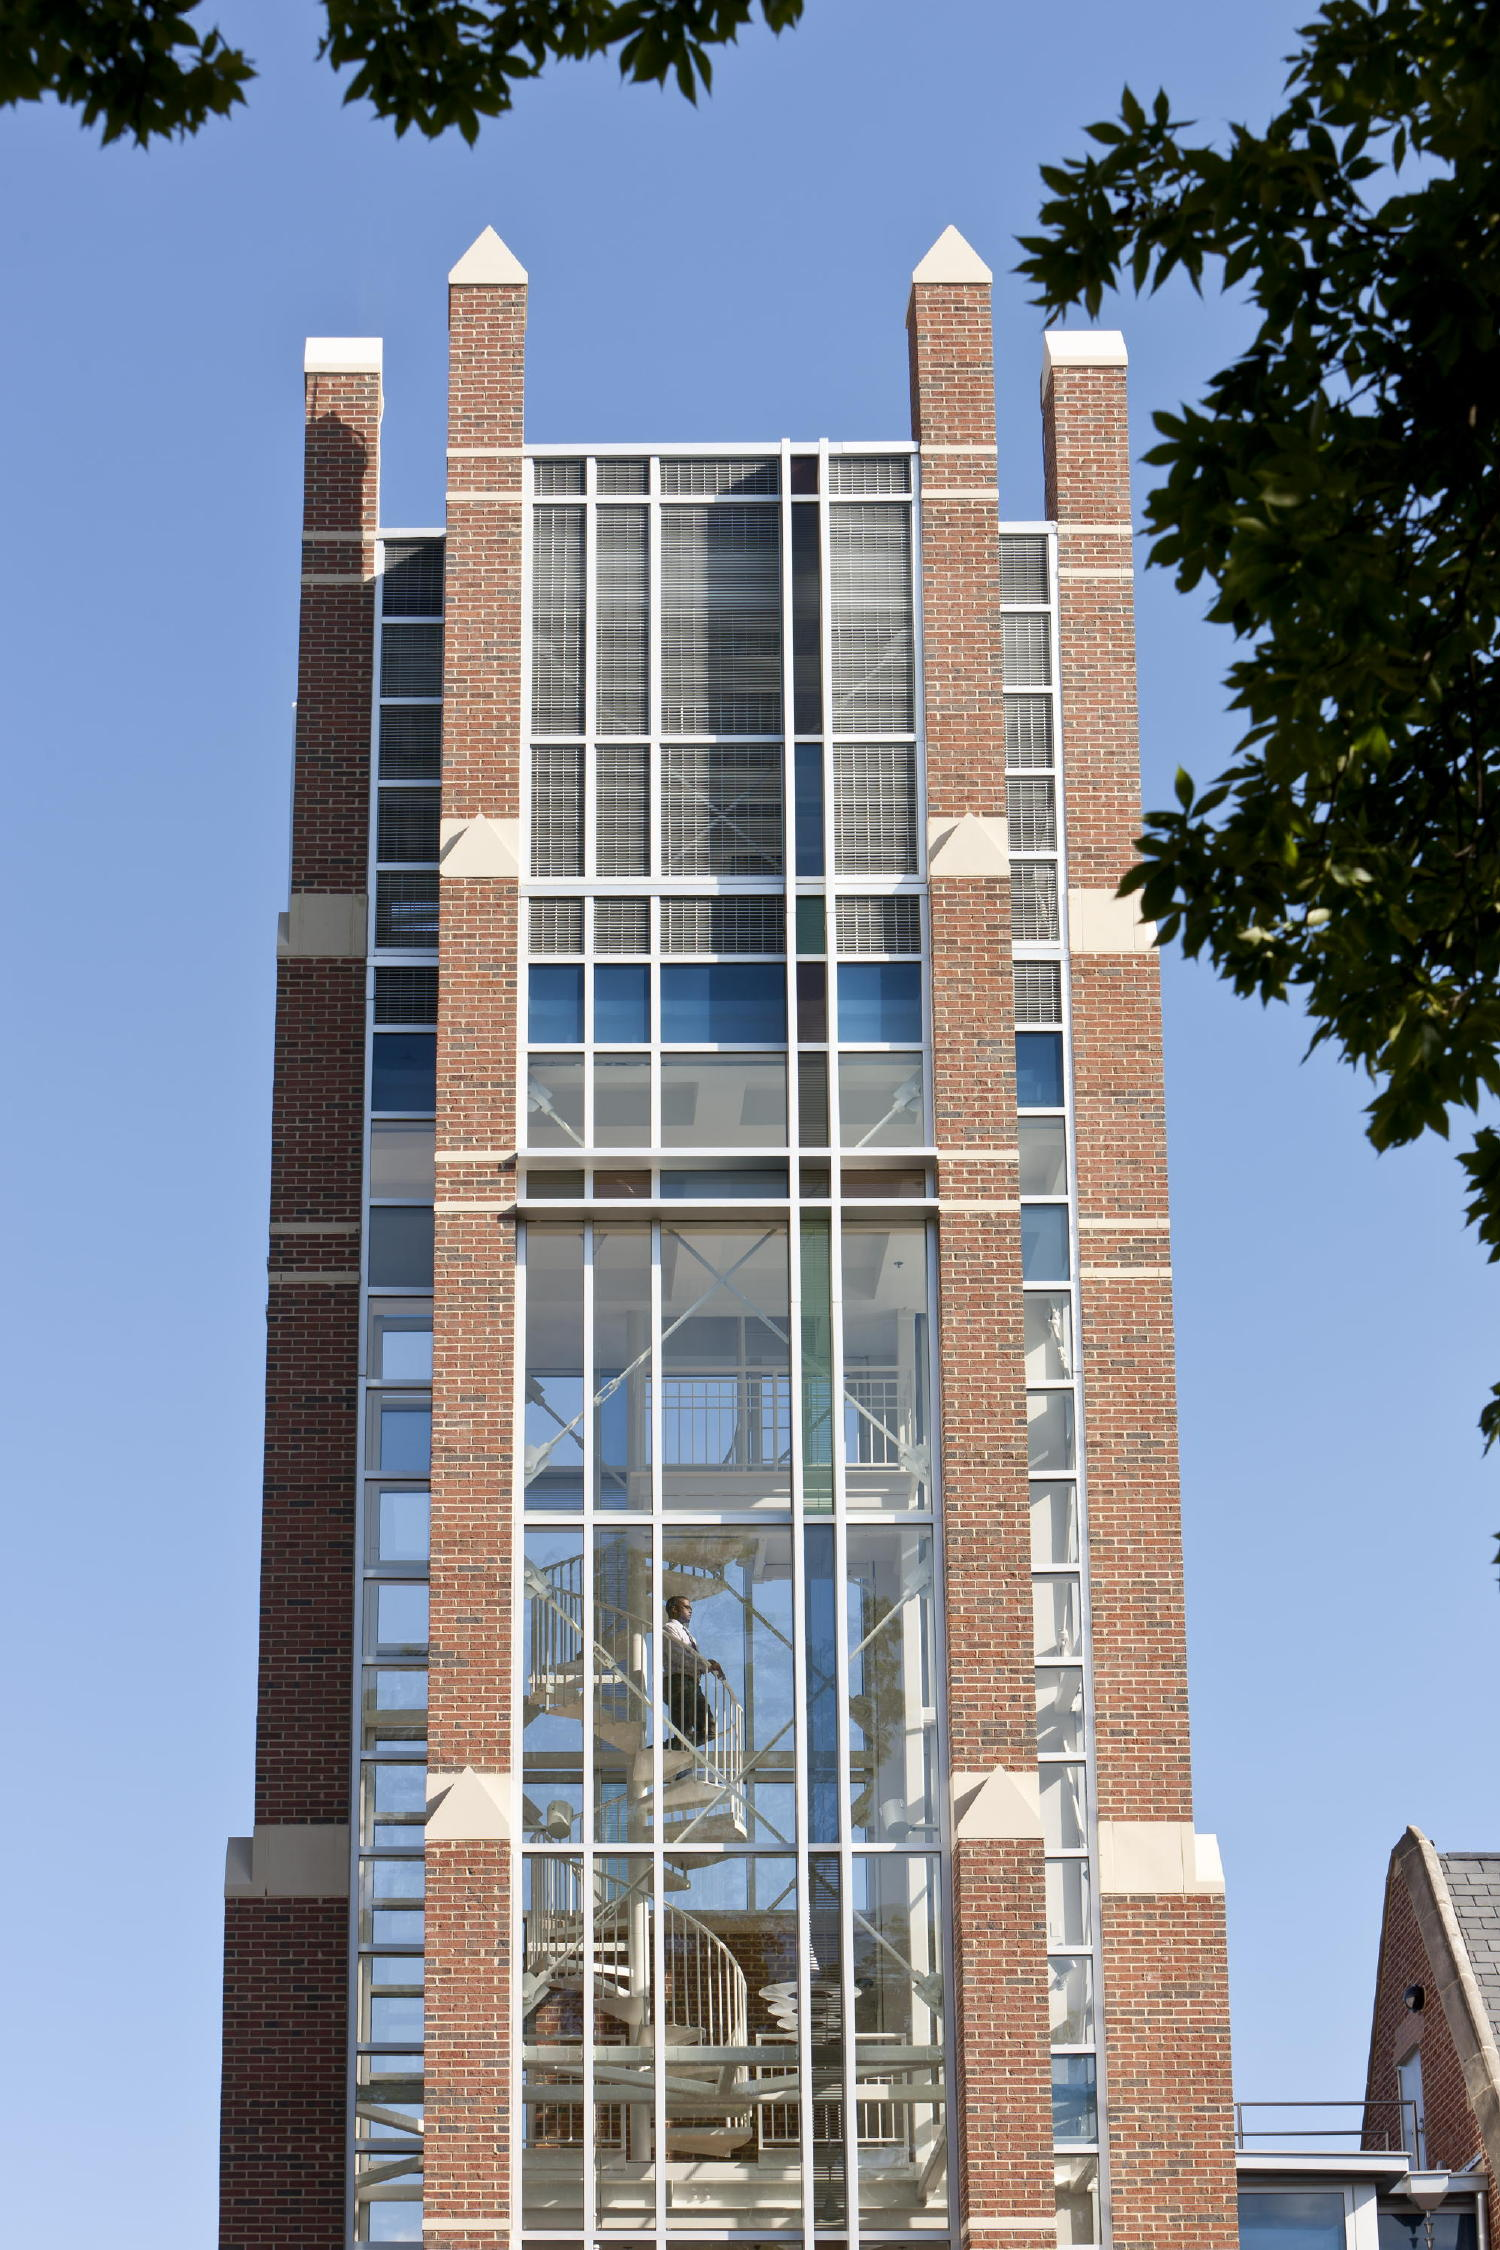 An 80-foot-tall glass, steel and masonry bell tower - complete with a carillon at the top - joins the former dormitory with one of the new classroom wings. The tower's brick and cast stone piers are infilled with clear, low-iron glass and a window design that incorporates abstracted crosses on each face of the tower. c 2012 Jonathan Hillyer / Atlanta